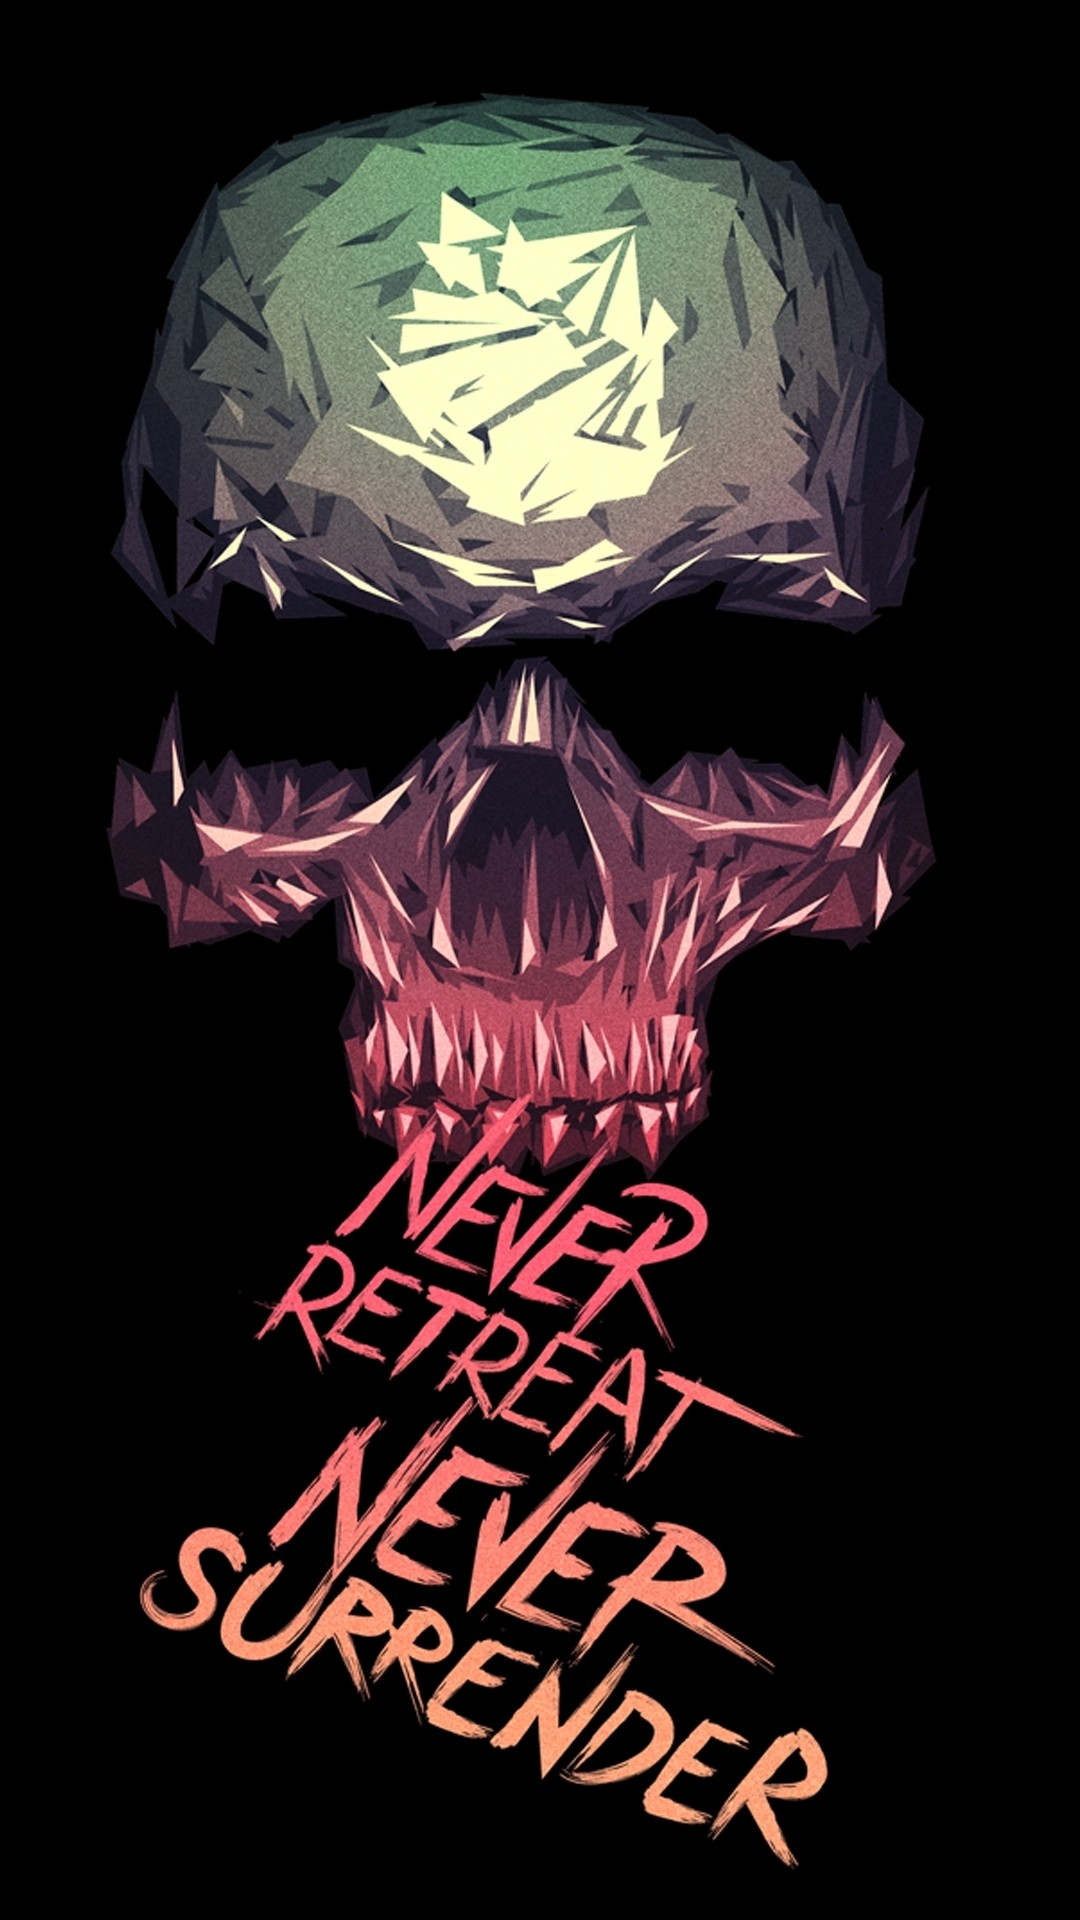 Skulls wallpaper download free awesome high resolution - Skull wallpaper iphone 6 ...